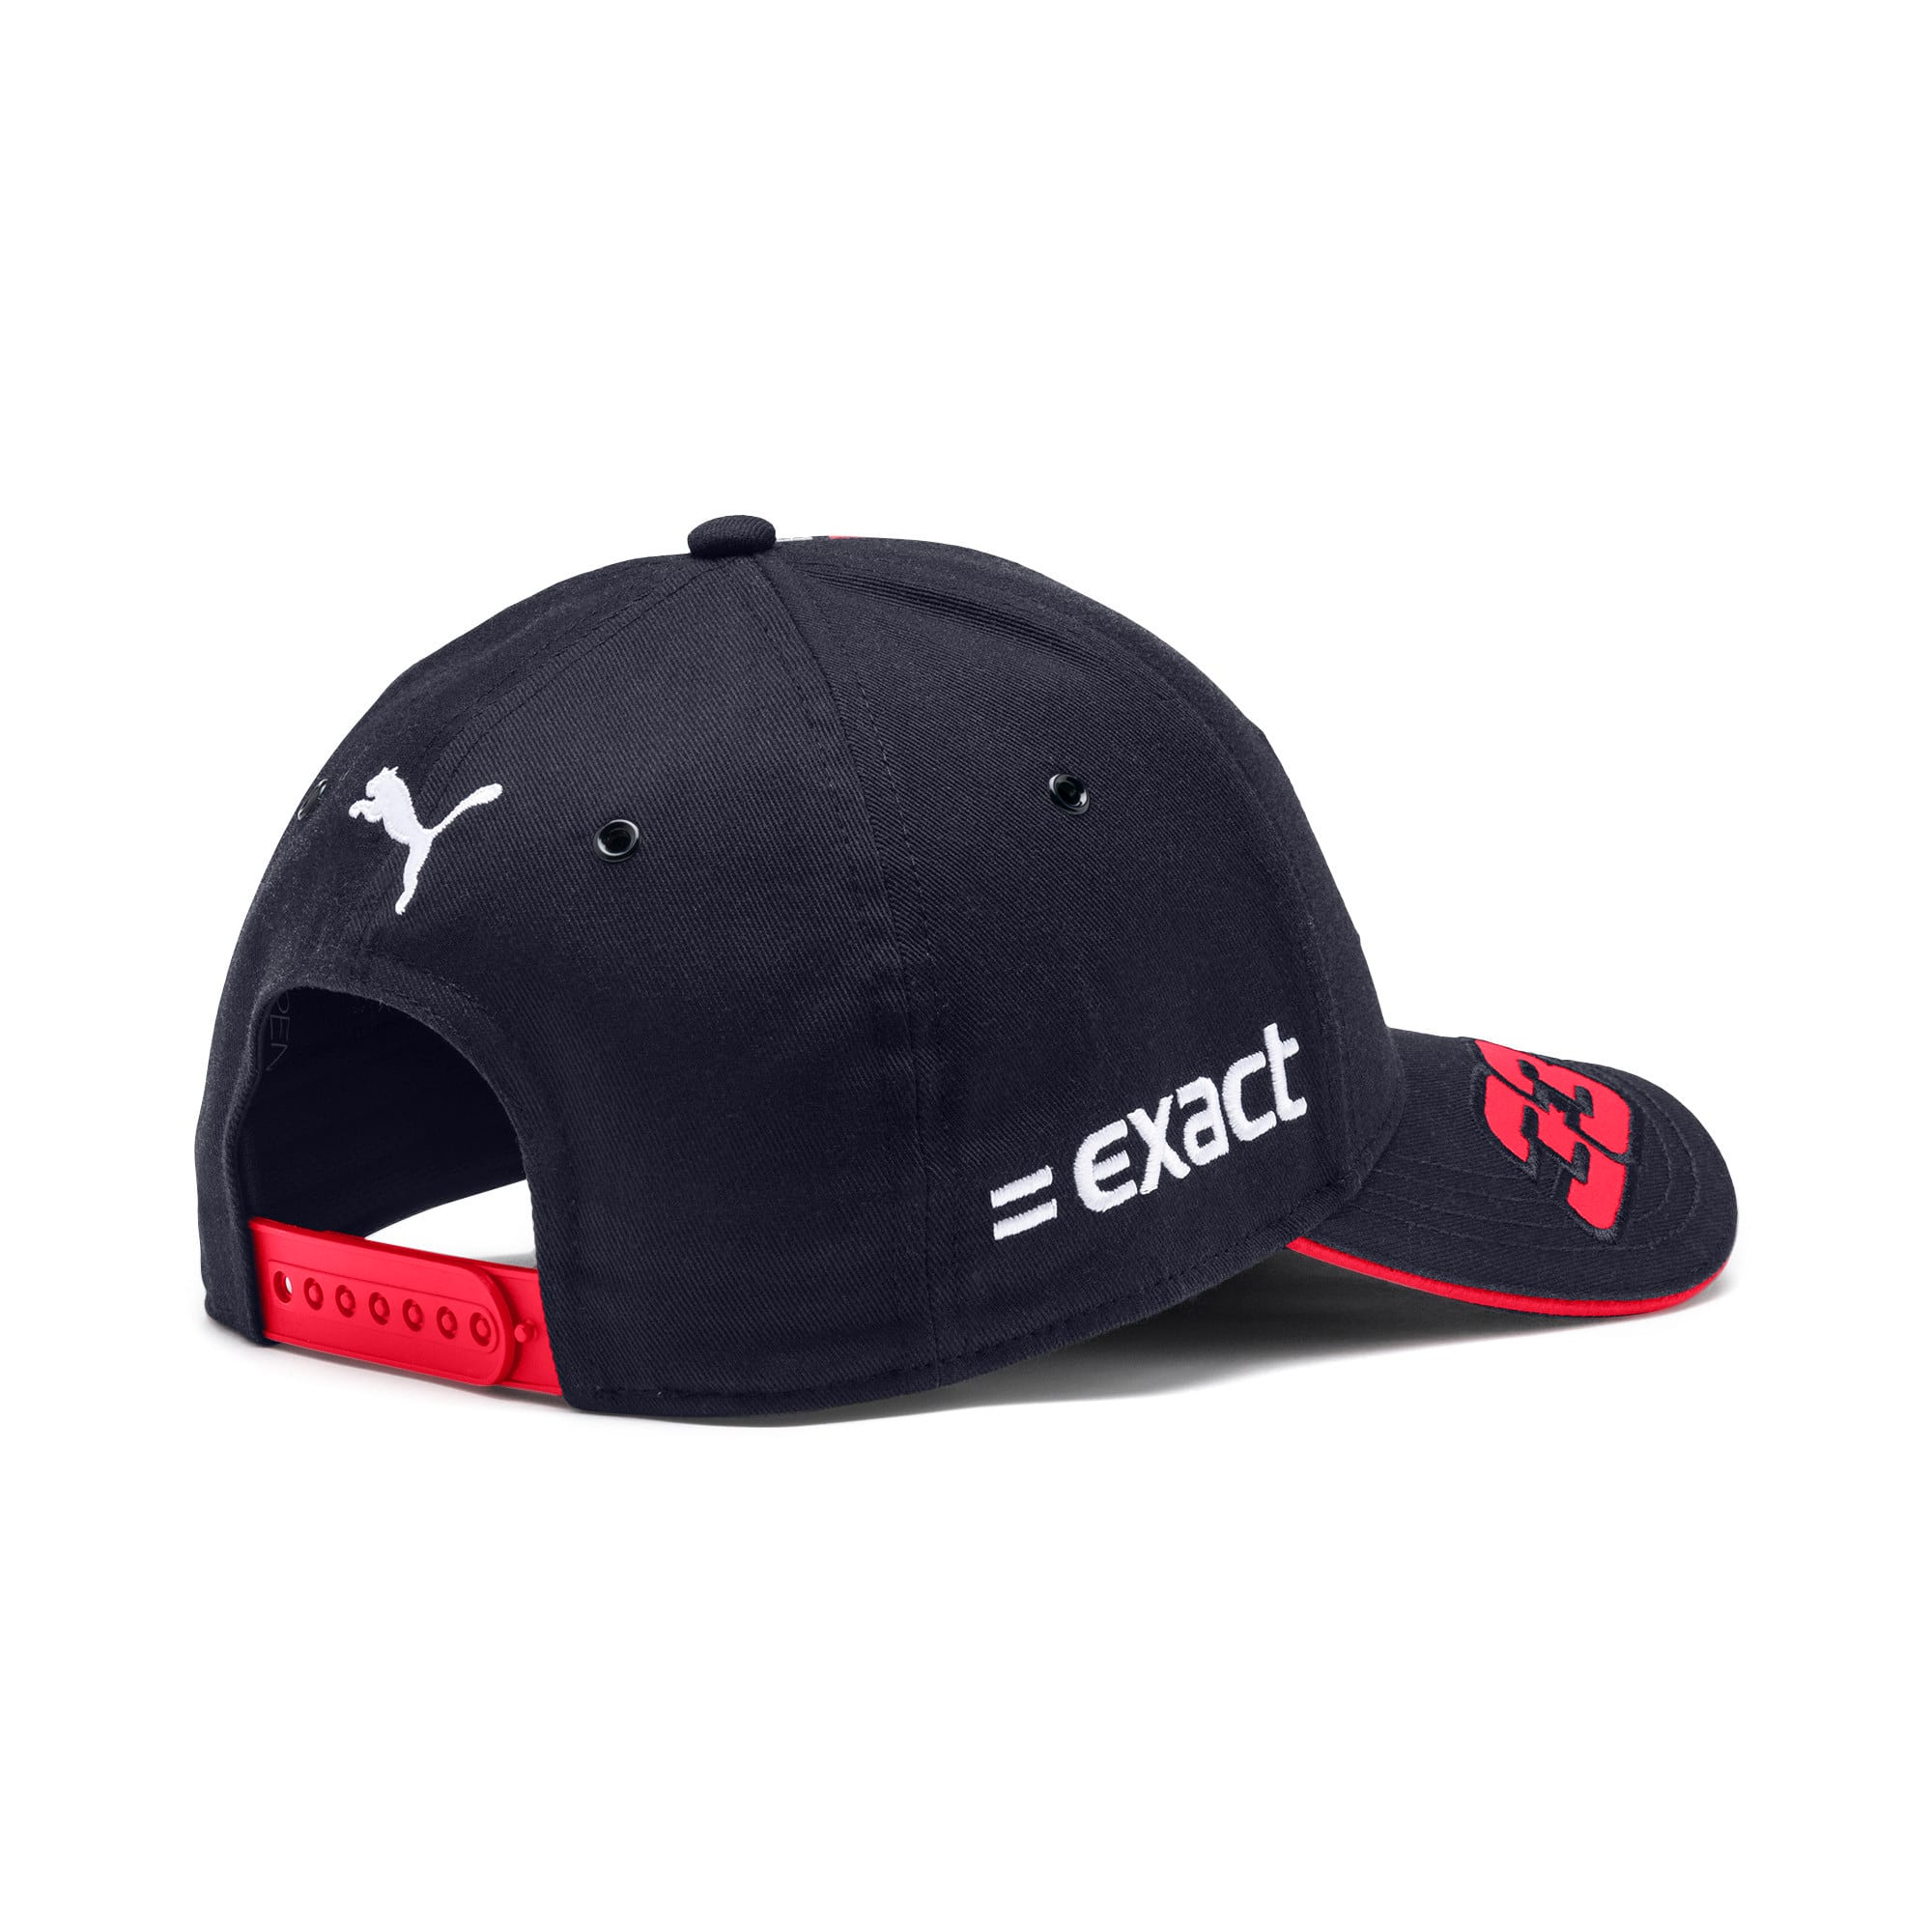 Thumbnail 2 of Red Bull Racing Replica Verstappen Baseball Cap, NIGHT SKY-Chinese Red, medium